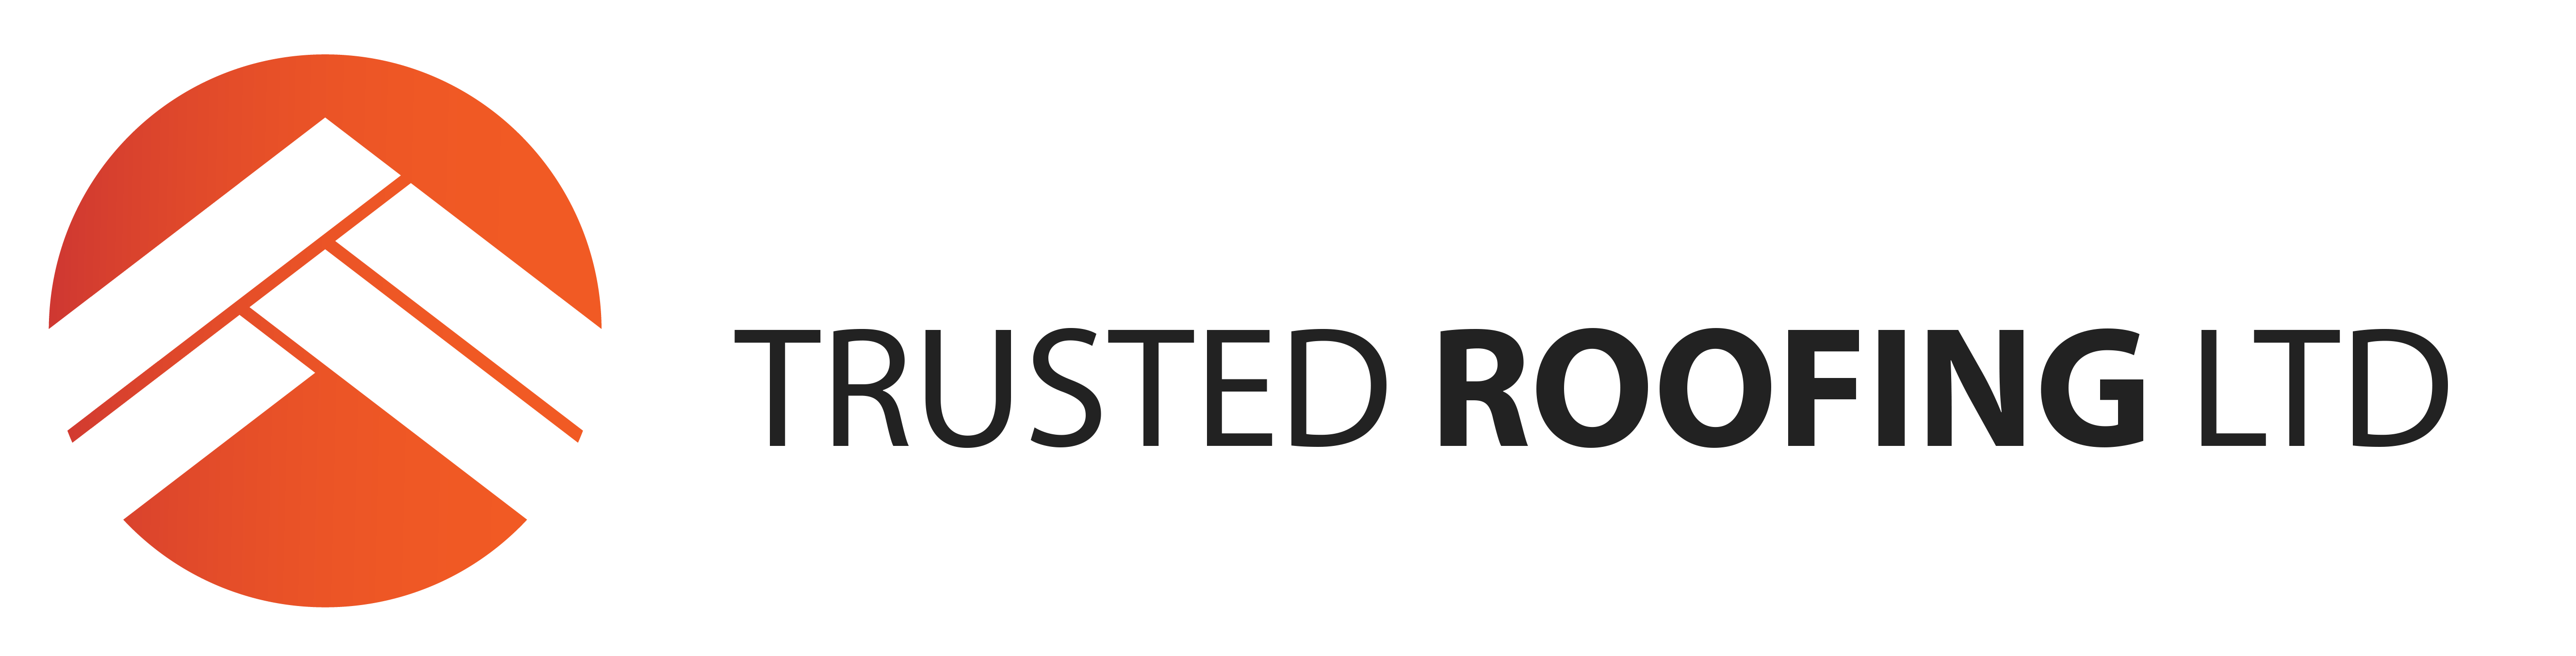 Trusted Roofing Ltd Logo